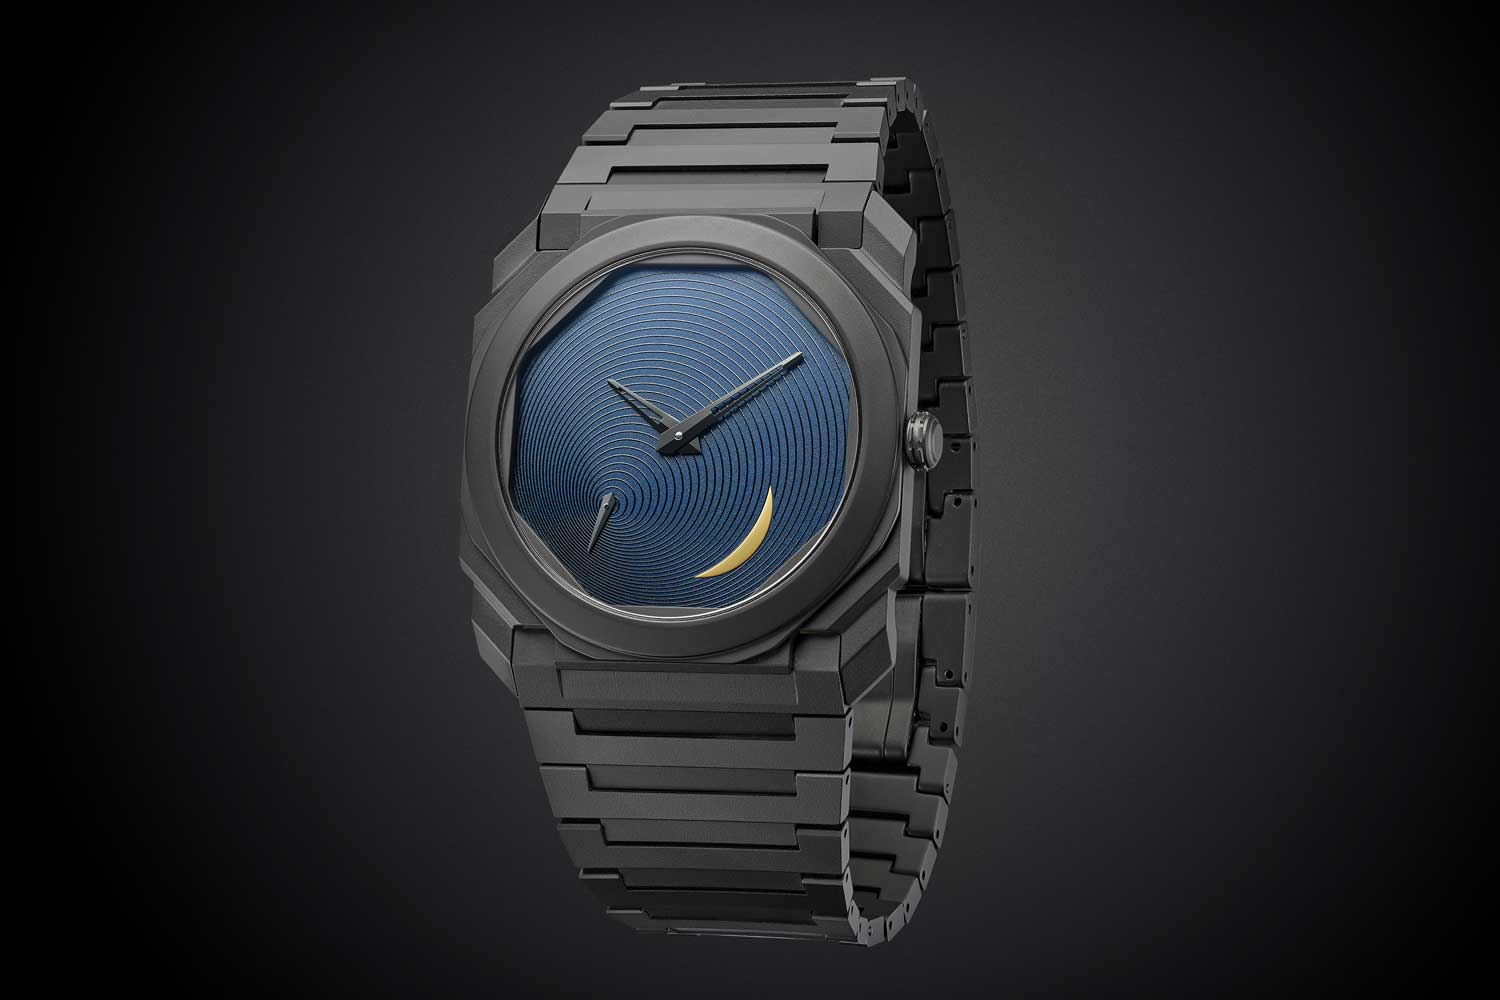 The new Bulgari Tadao Ando Limited Edition comes with Ando's signature dial in blue with an addition of a yellow crescent moon meant to express the transitory nature of time